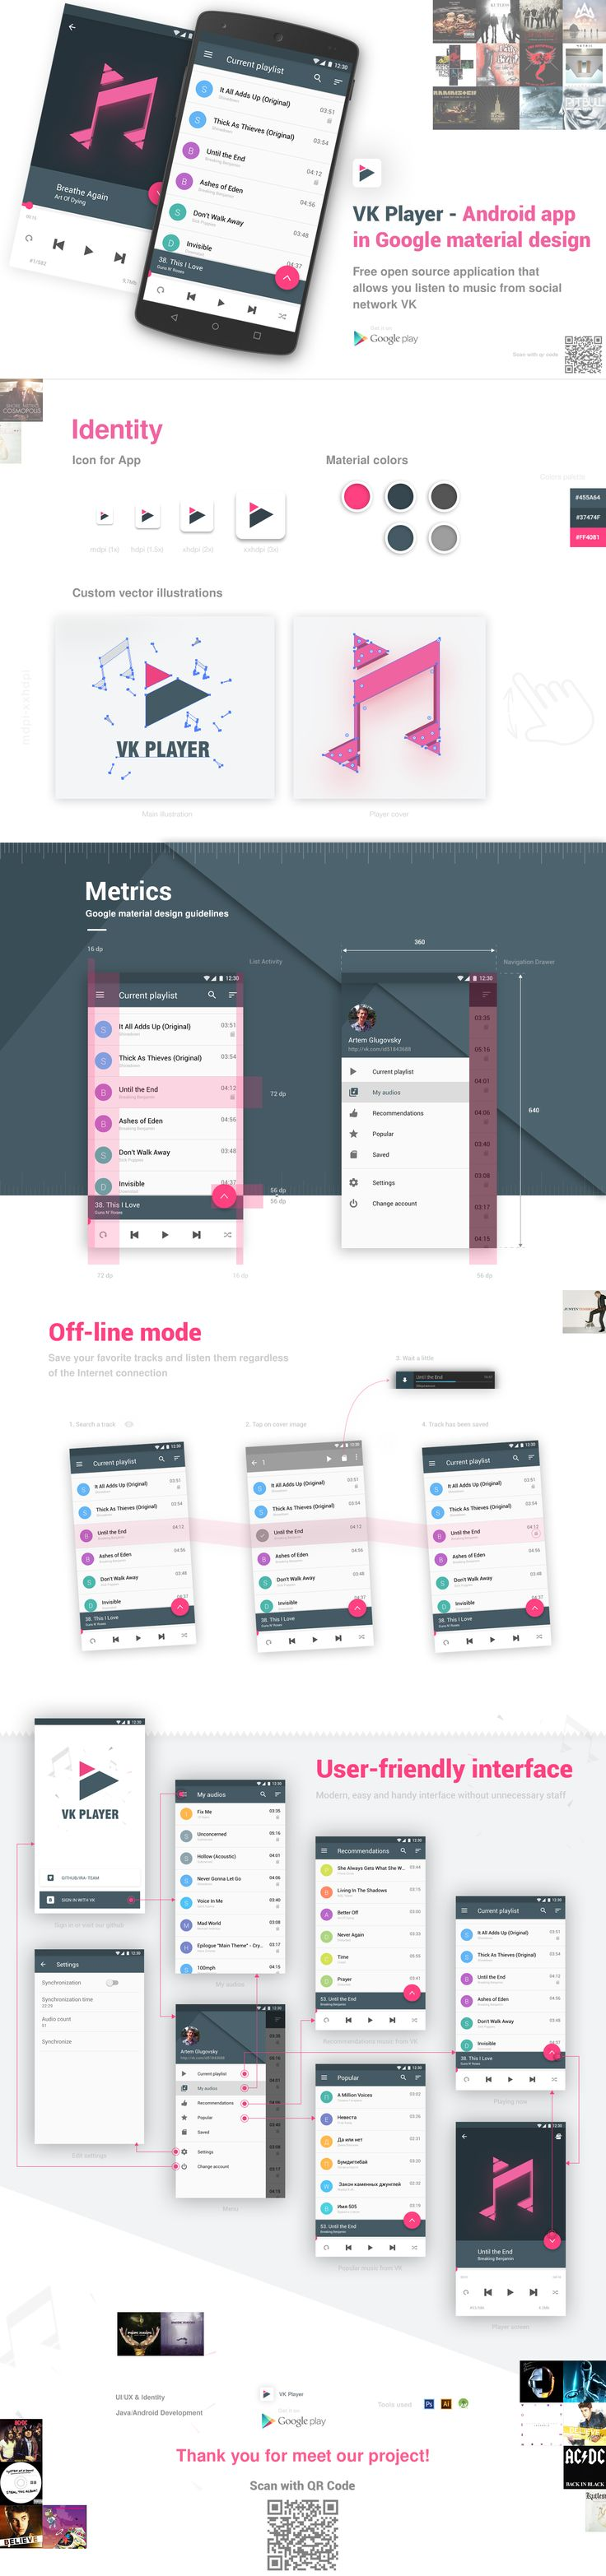 VKPlayer - Android App in Google Material design on Behance